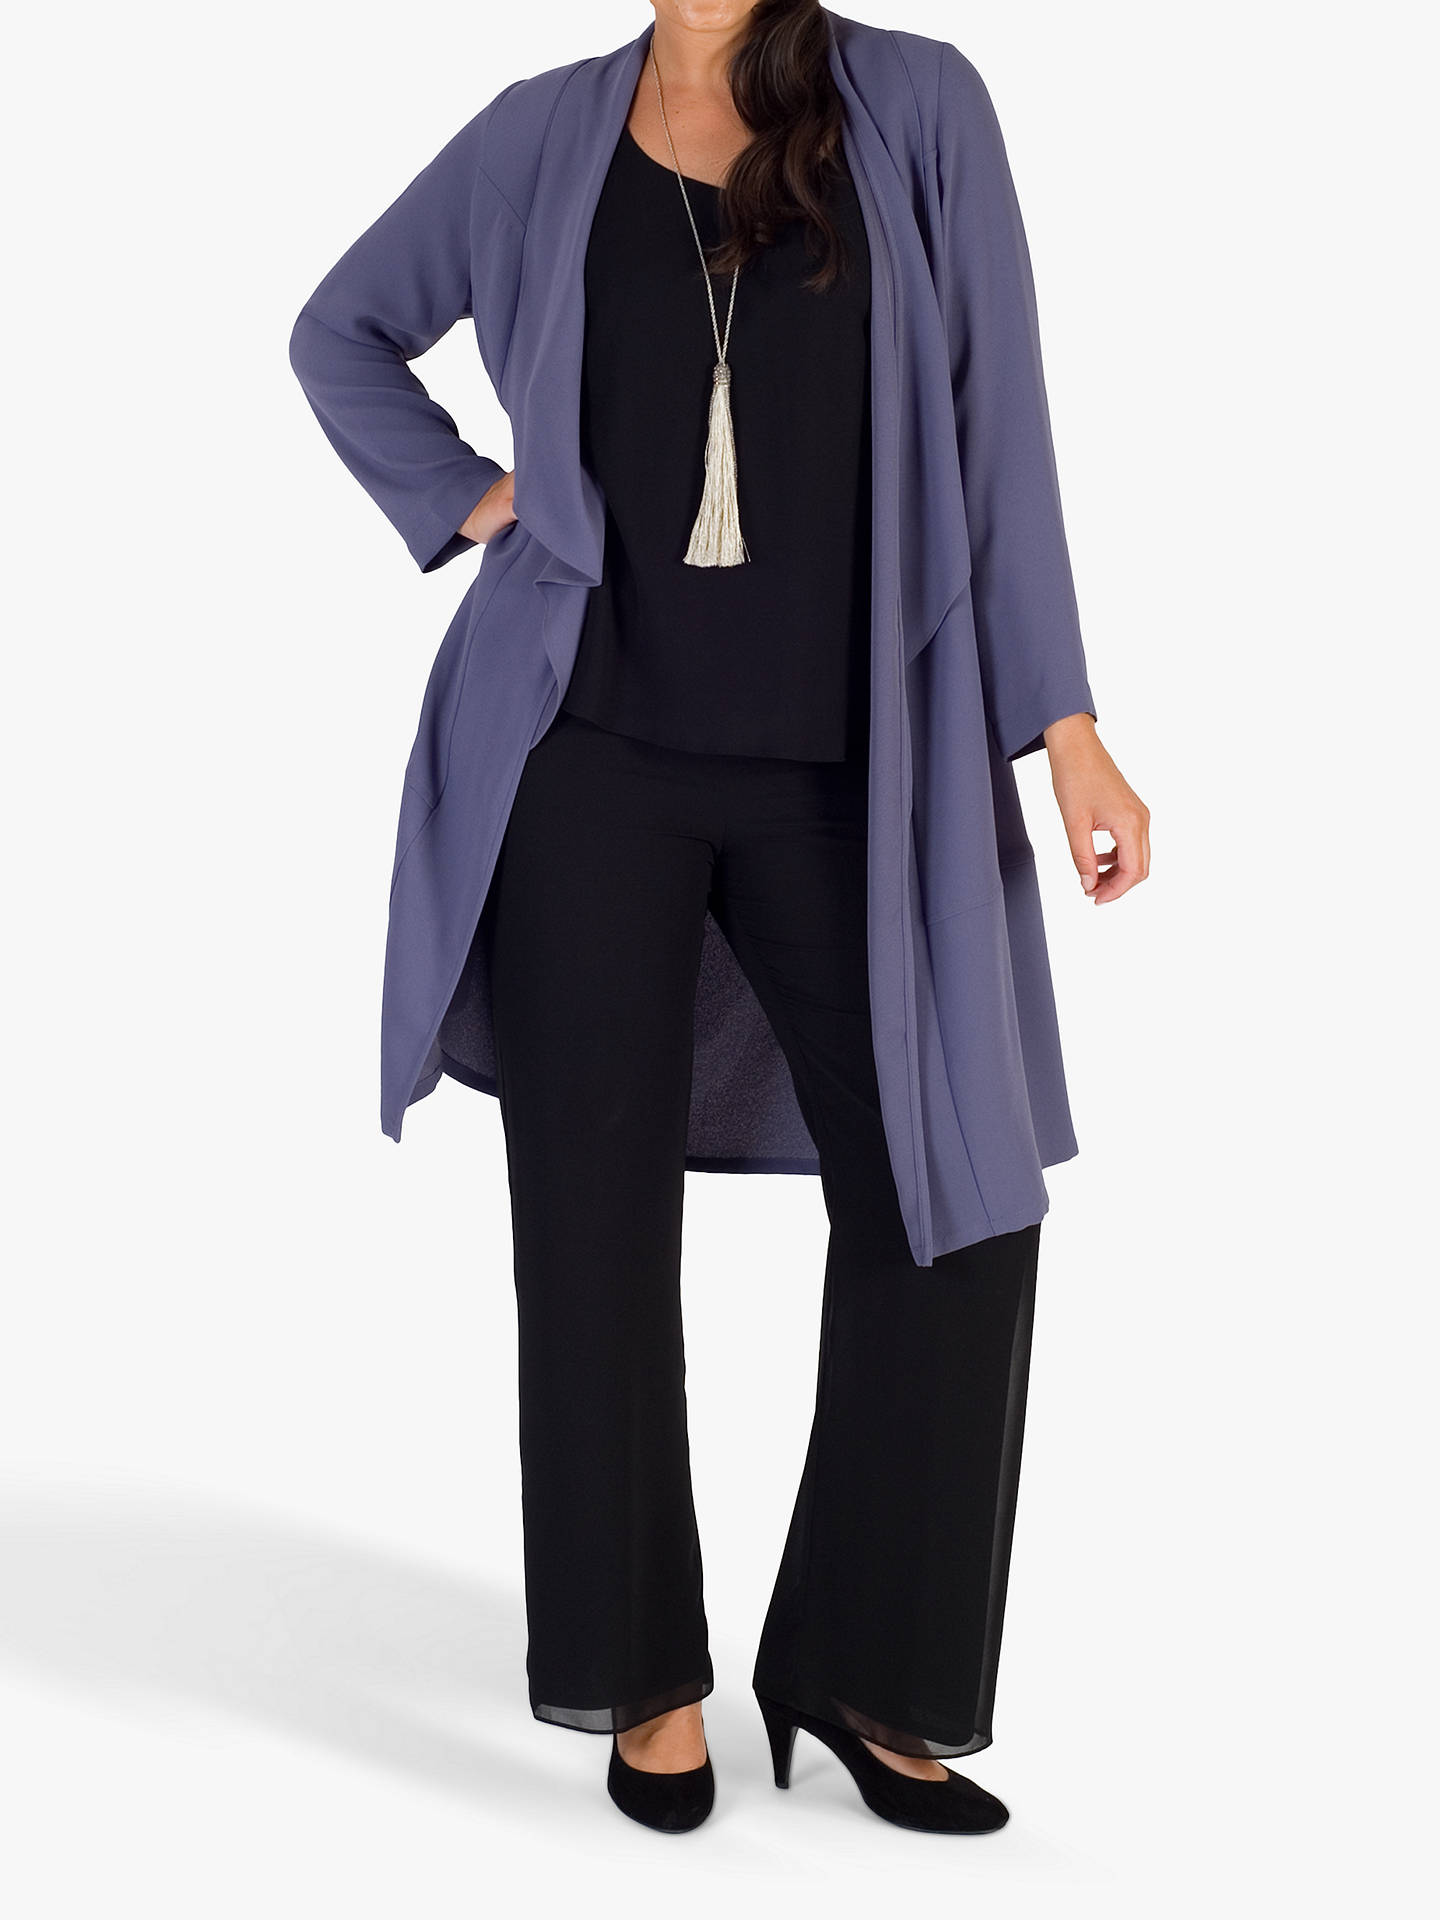 BuyChesca Crepe Coat, Hyacinth, 16 Online at johnlewis.com